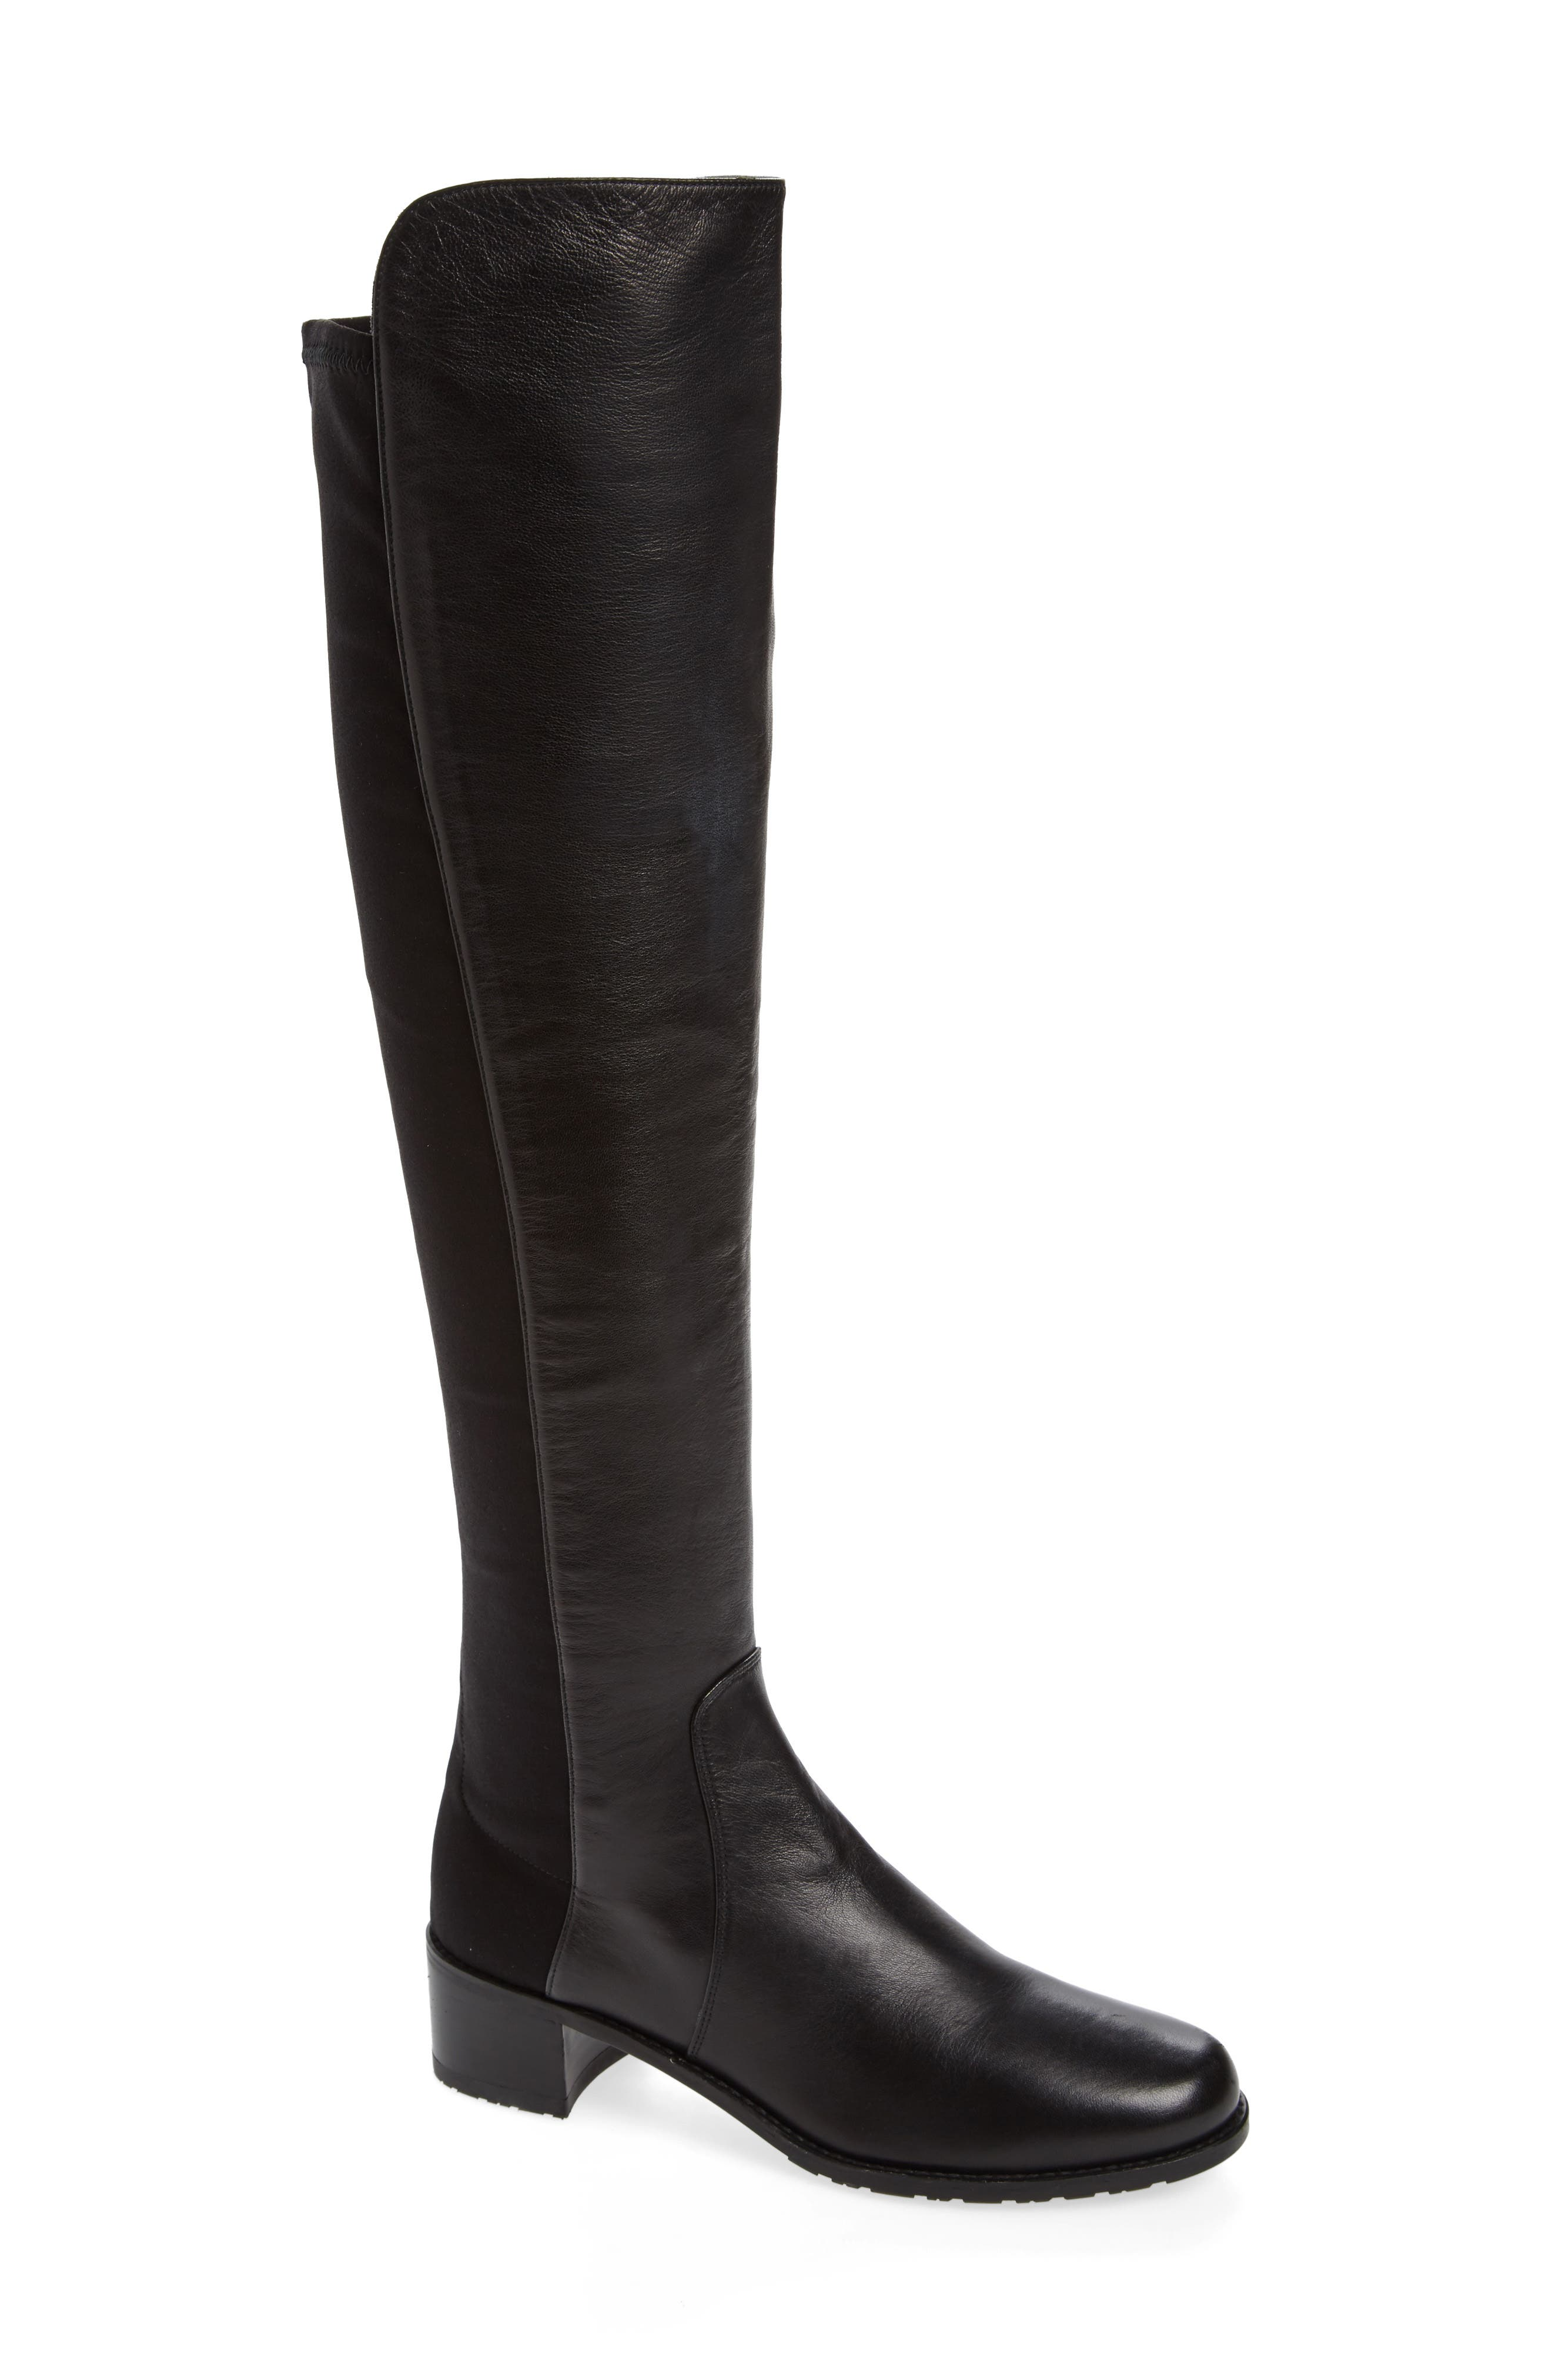 'Reserve' Over the Knee Boot,                         Main,                         color, Black Nappa